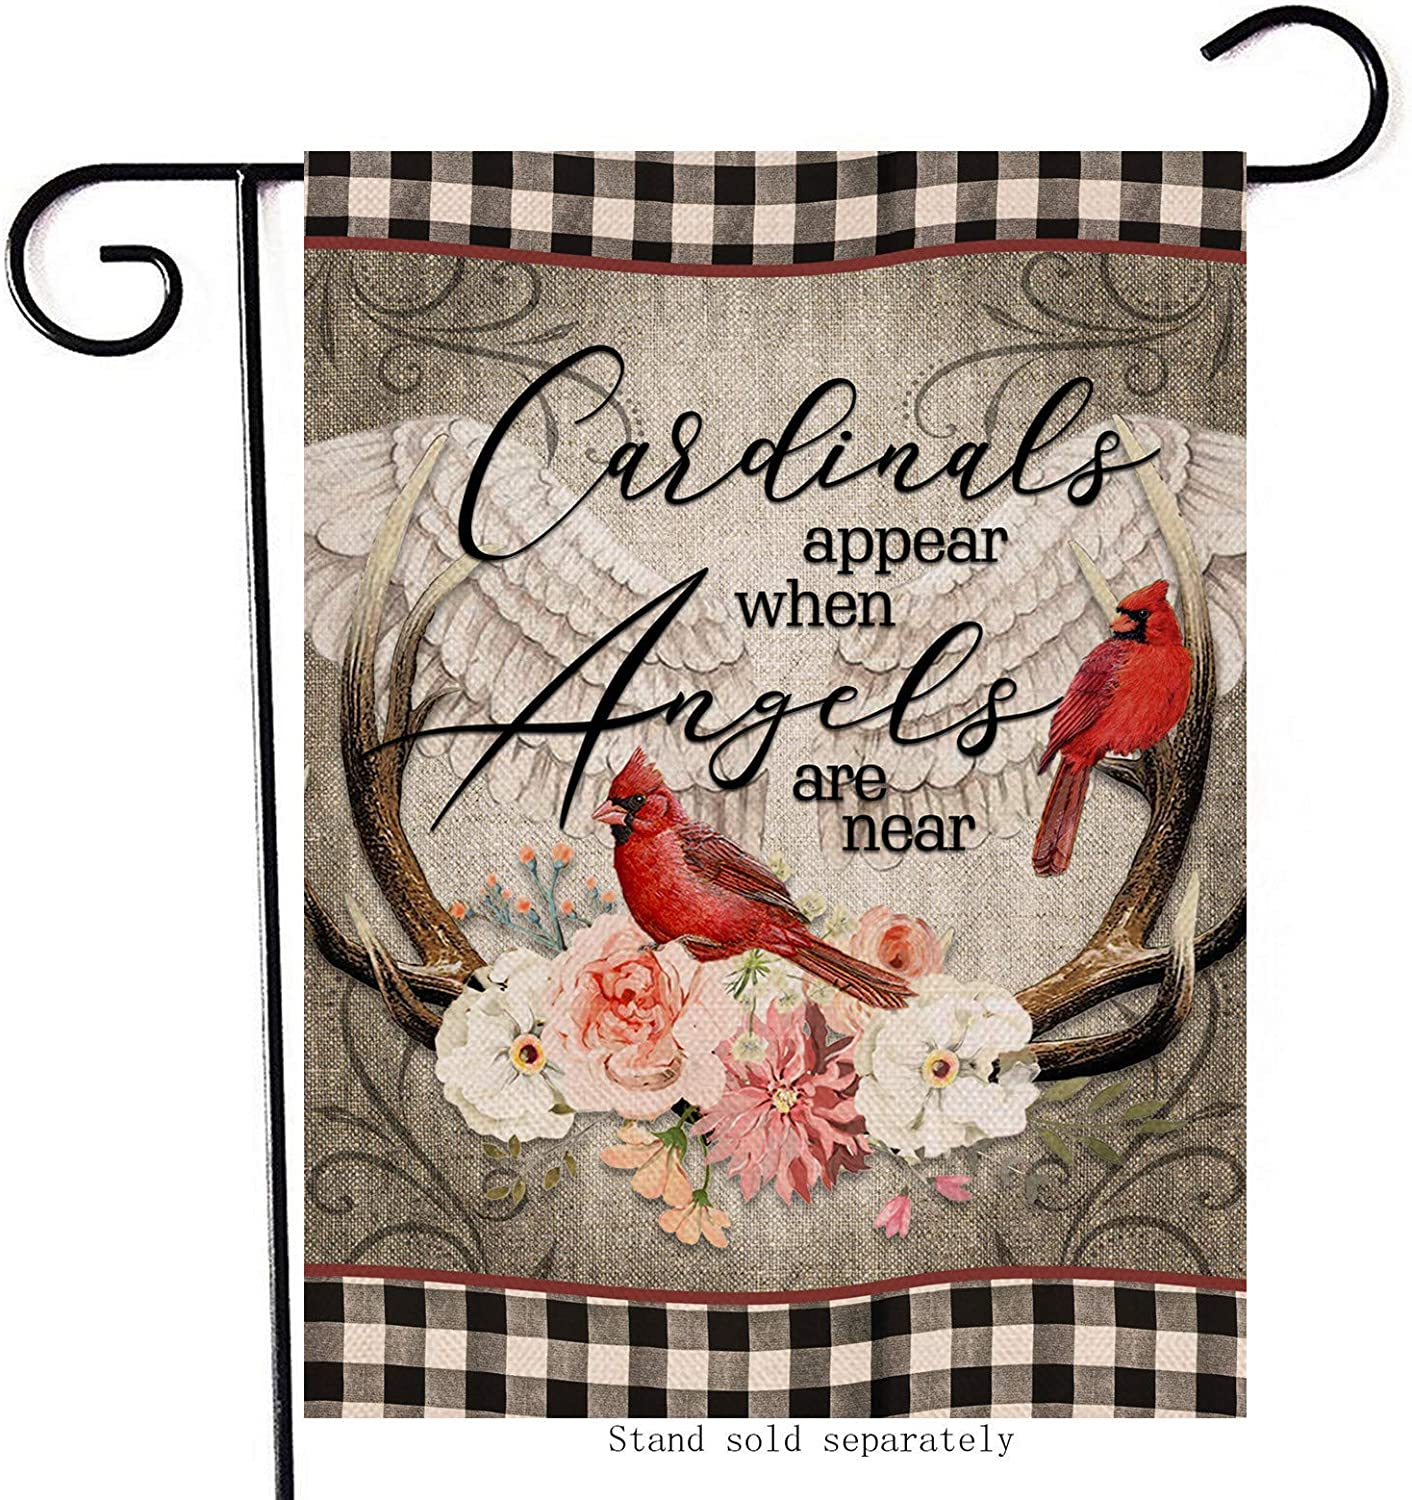 Cardinals Appear When Angels are Near Home Decorative Garden Flag, Buffalo Check Plaid House Yard Red Bird Wings Decor Double Sided, Winter Outside Decoration Farmhouse Outdoor Small Flag 12x18